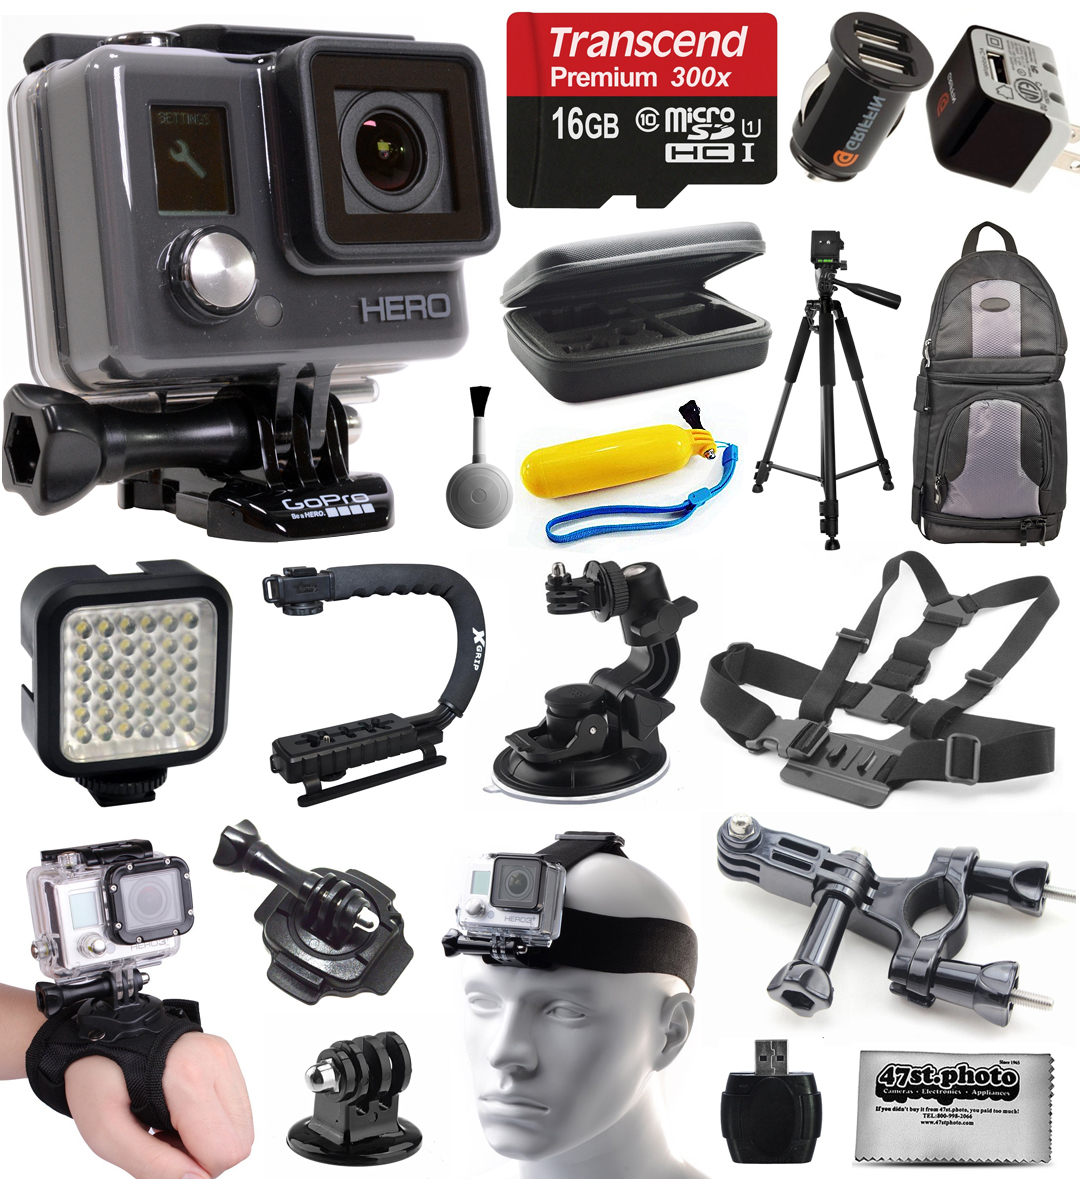 GoPro HD HERO Waterproof Action Camera Camcorder (CHDHA-301) with 16GB Everything You Need Accessories Bundle includes MicroSD Card + Charger + Tripod + Backpack + Case + LED Light + Stabilizer Grip